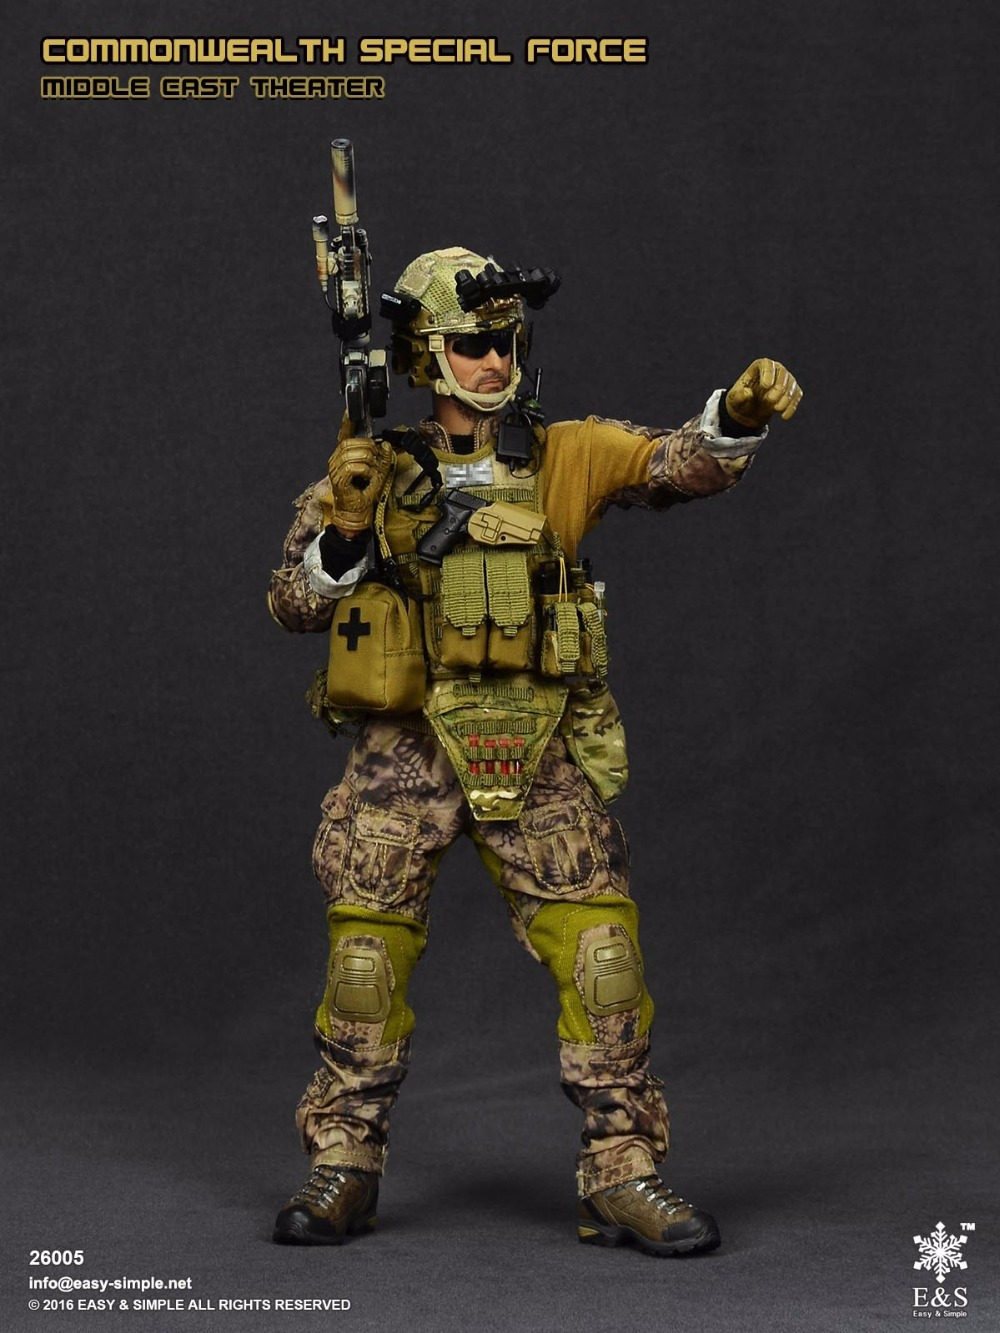 1:6 scale Super flexible military figure 12 action figure doll Collectible Model toys Commonwealth Special Force Middle East did1 6 scale doll american expeditionary force infantry special edition super flexible figure model wwi soldier finished product